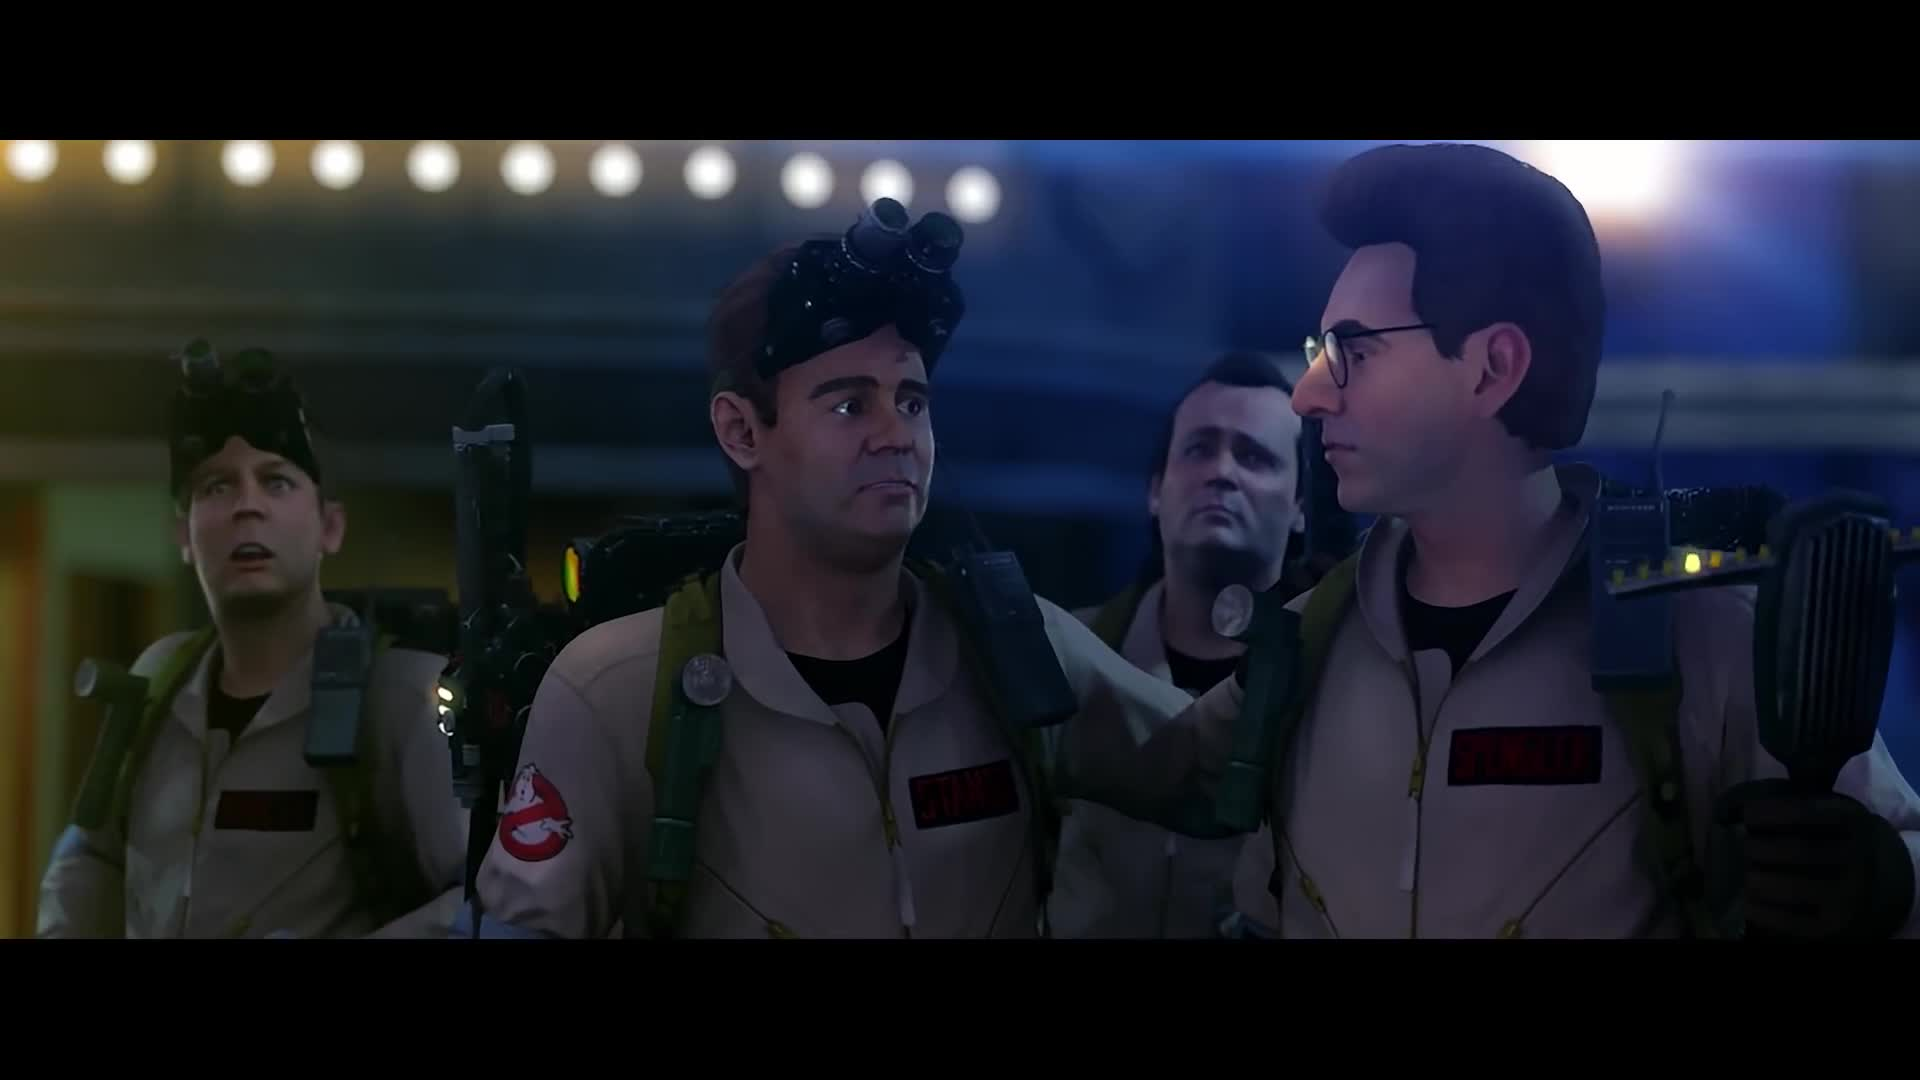 Trailer, Videospiel, Computerspiel, Ghostbusters, Saber Interactive, Ghostbusters: The Video Game Remastered, Ghostbusters: The Video Game